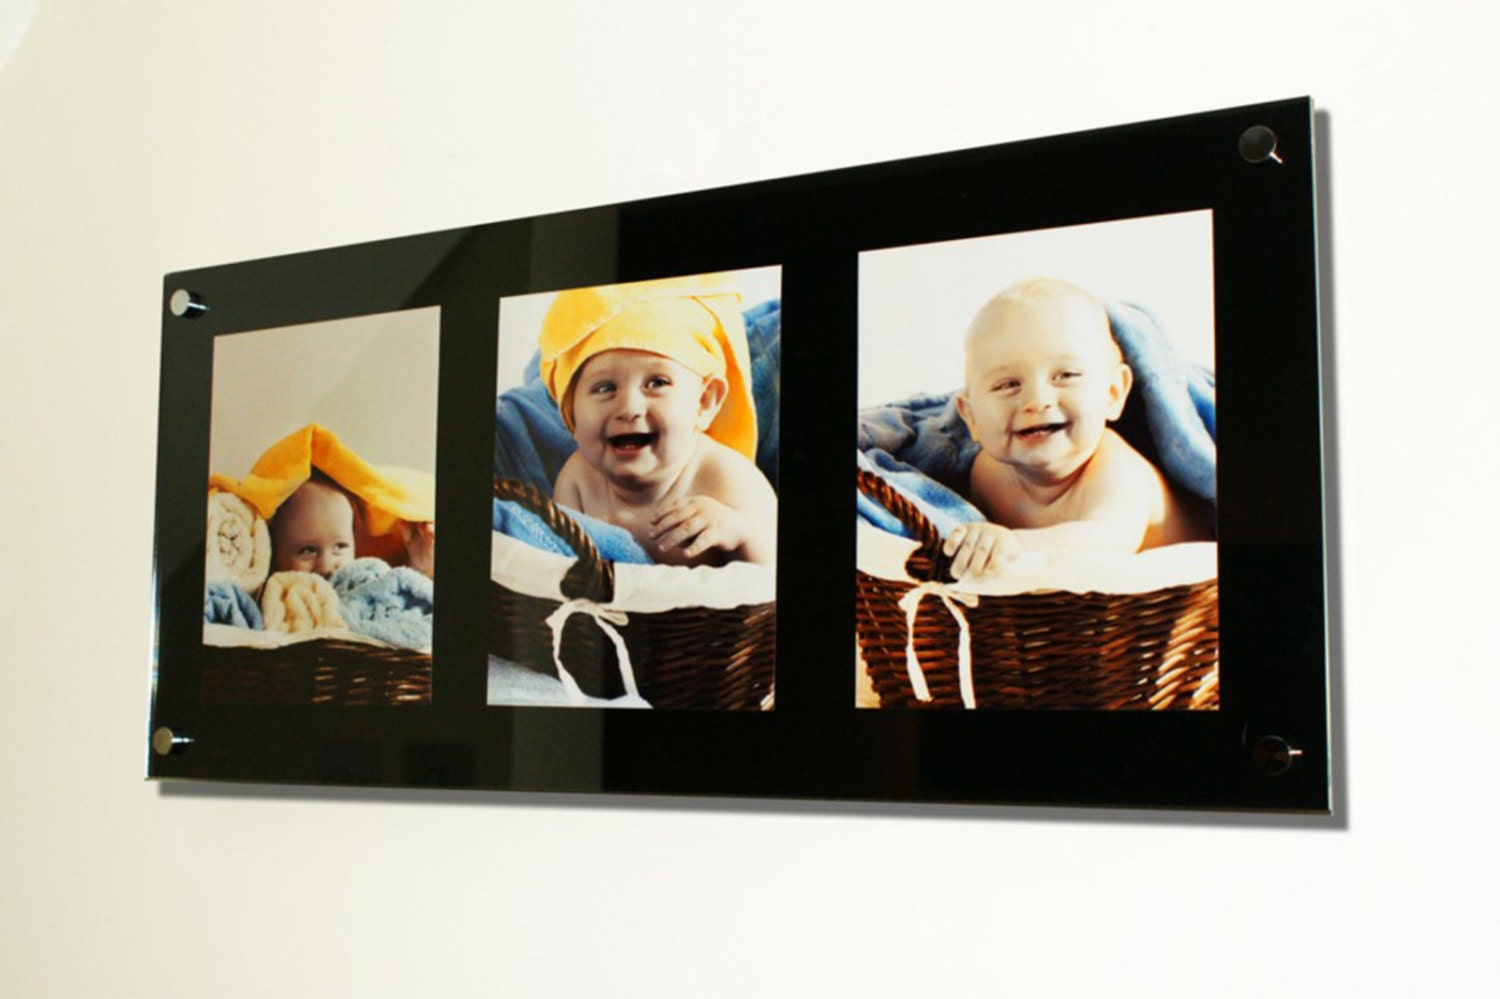 All colours cheshire acrylic 32x14 wall mount multi floating 3x 10 all colours cheshire acrylic 32x14 wall mount multi floating 3x 10 x 8 8 x 10 25 x 30 cm picture photo frame high gloss jeuxipadfo Gallery